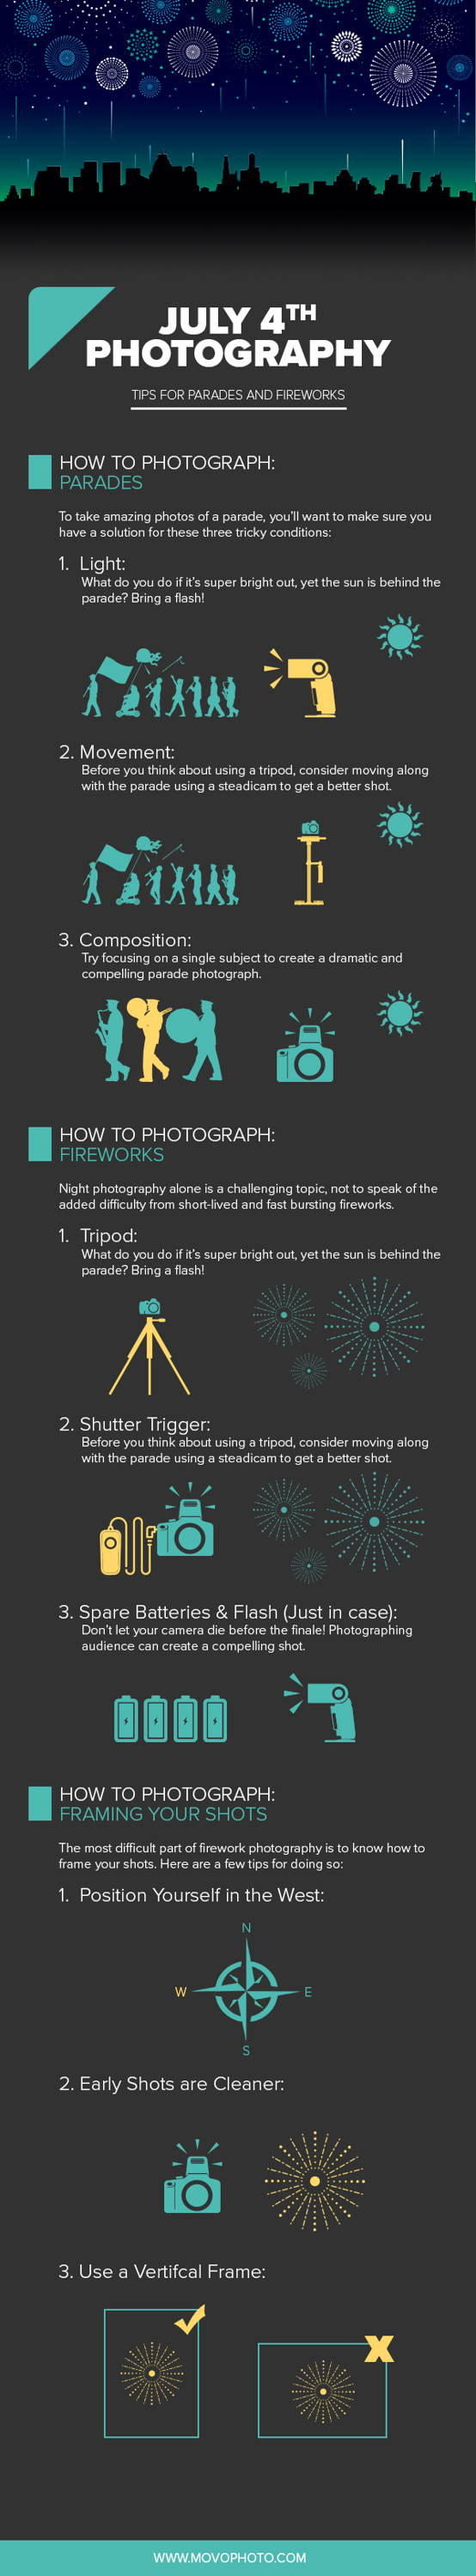 July 4th Photography: Tips for Parades and Fireworks